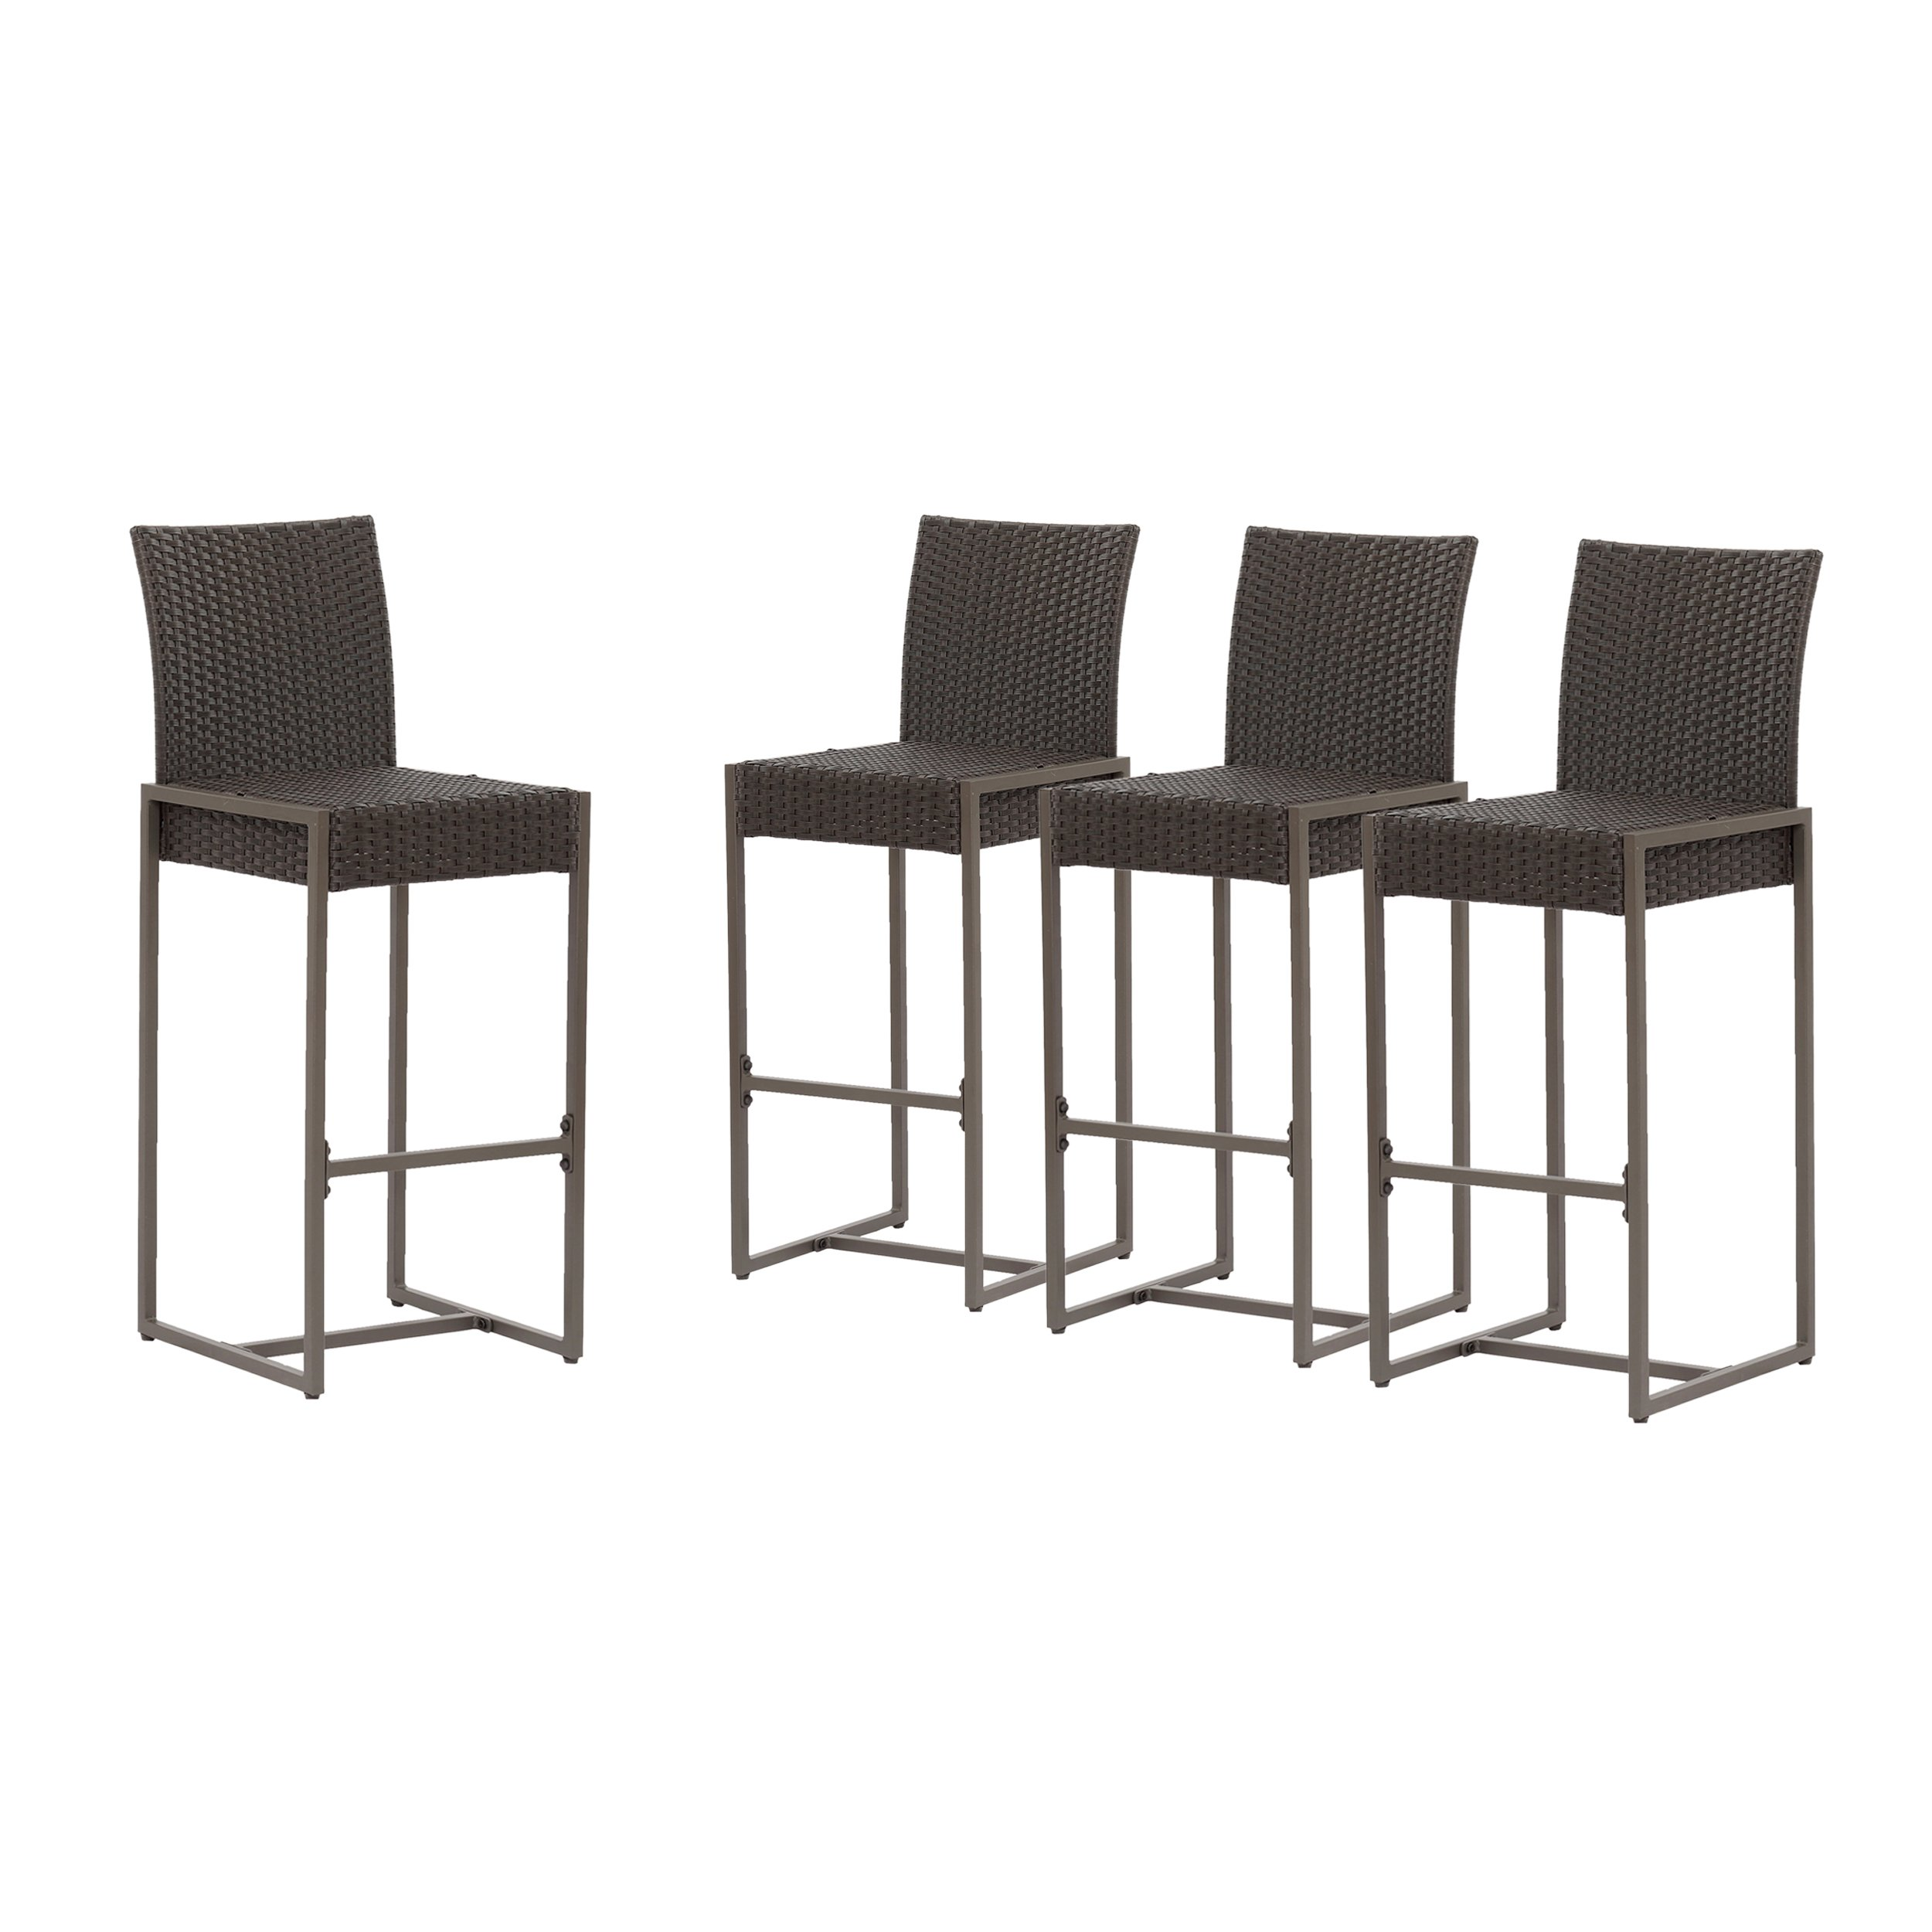 Great Deal Furniture 305162 Kelly Outdoor Wicker 30 Inch Barstool (Set of 4), Dark Brown by Great Deal Furniture